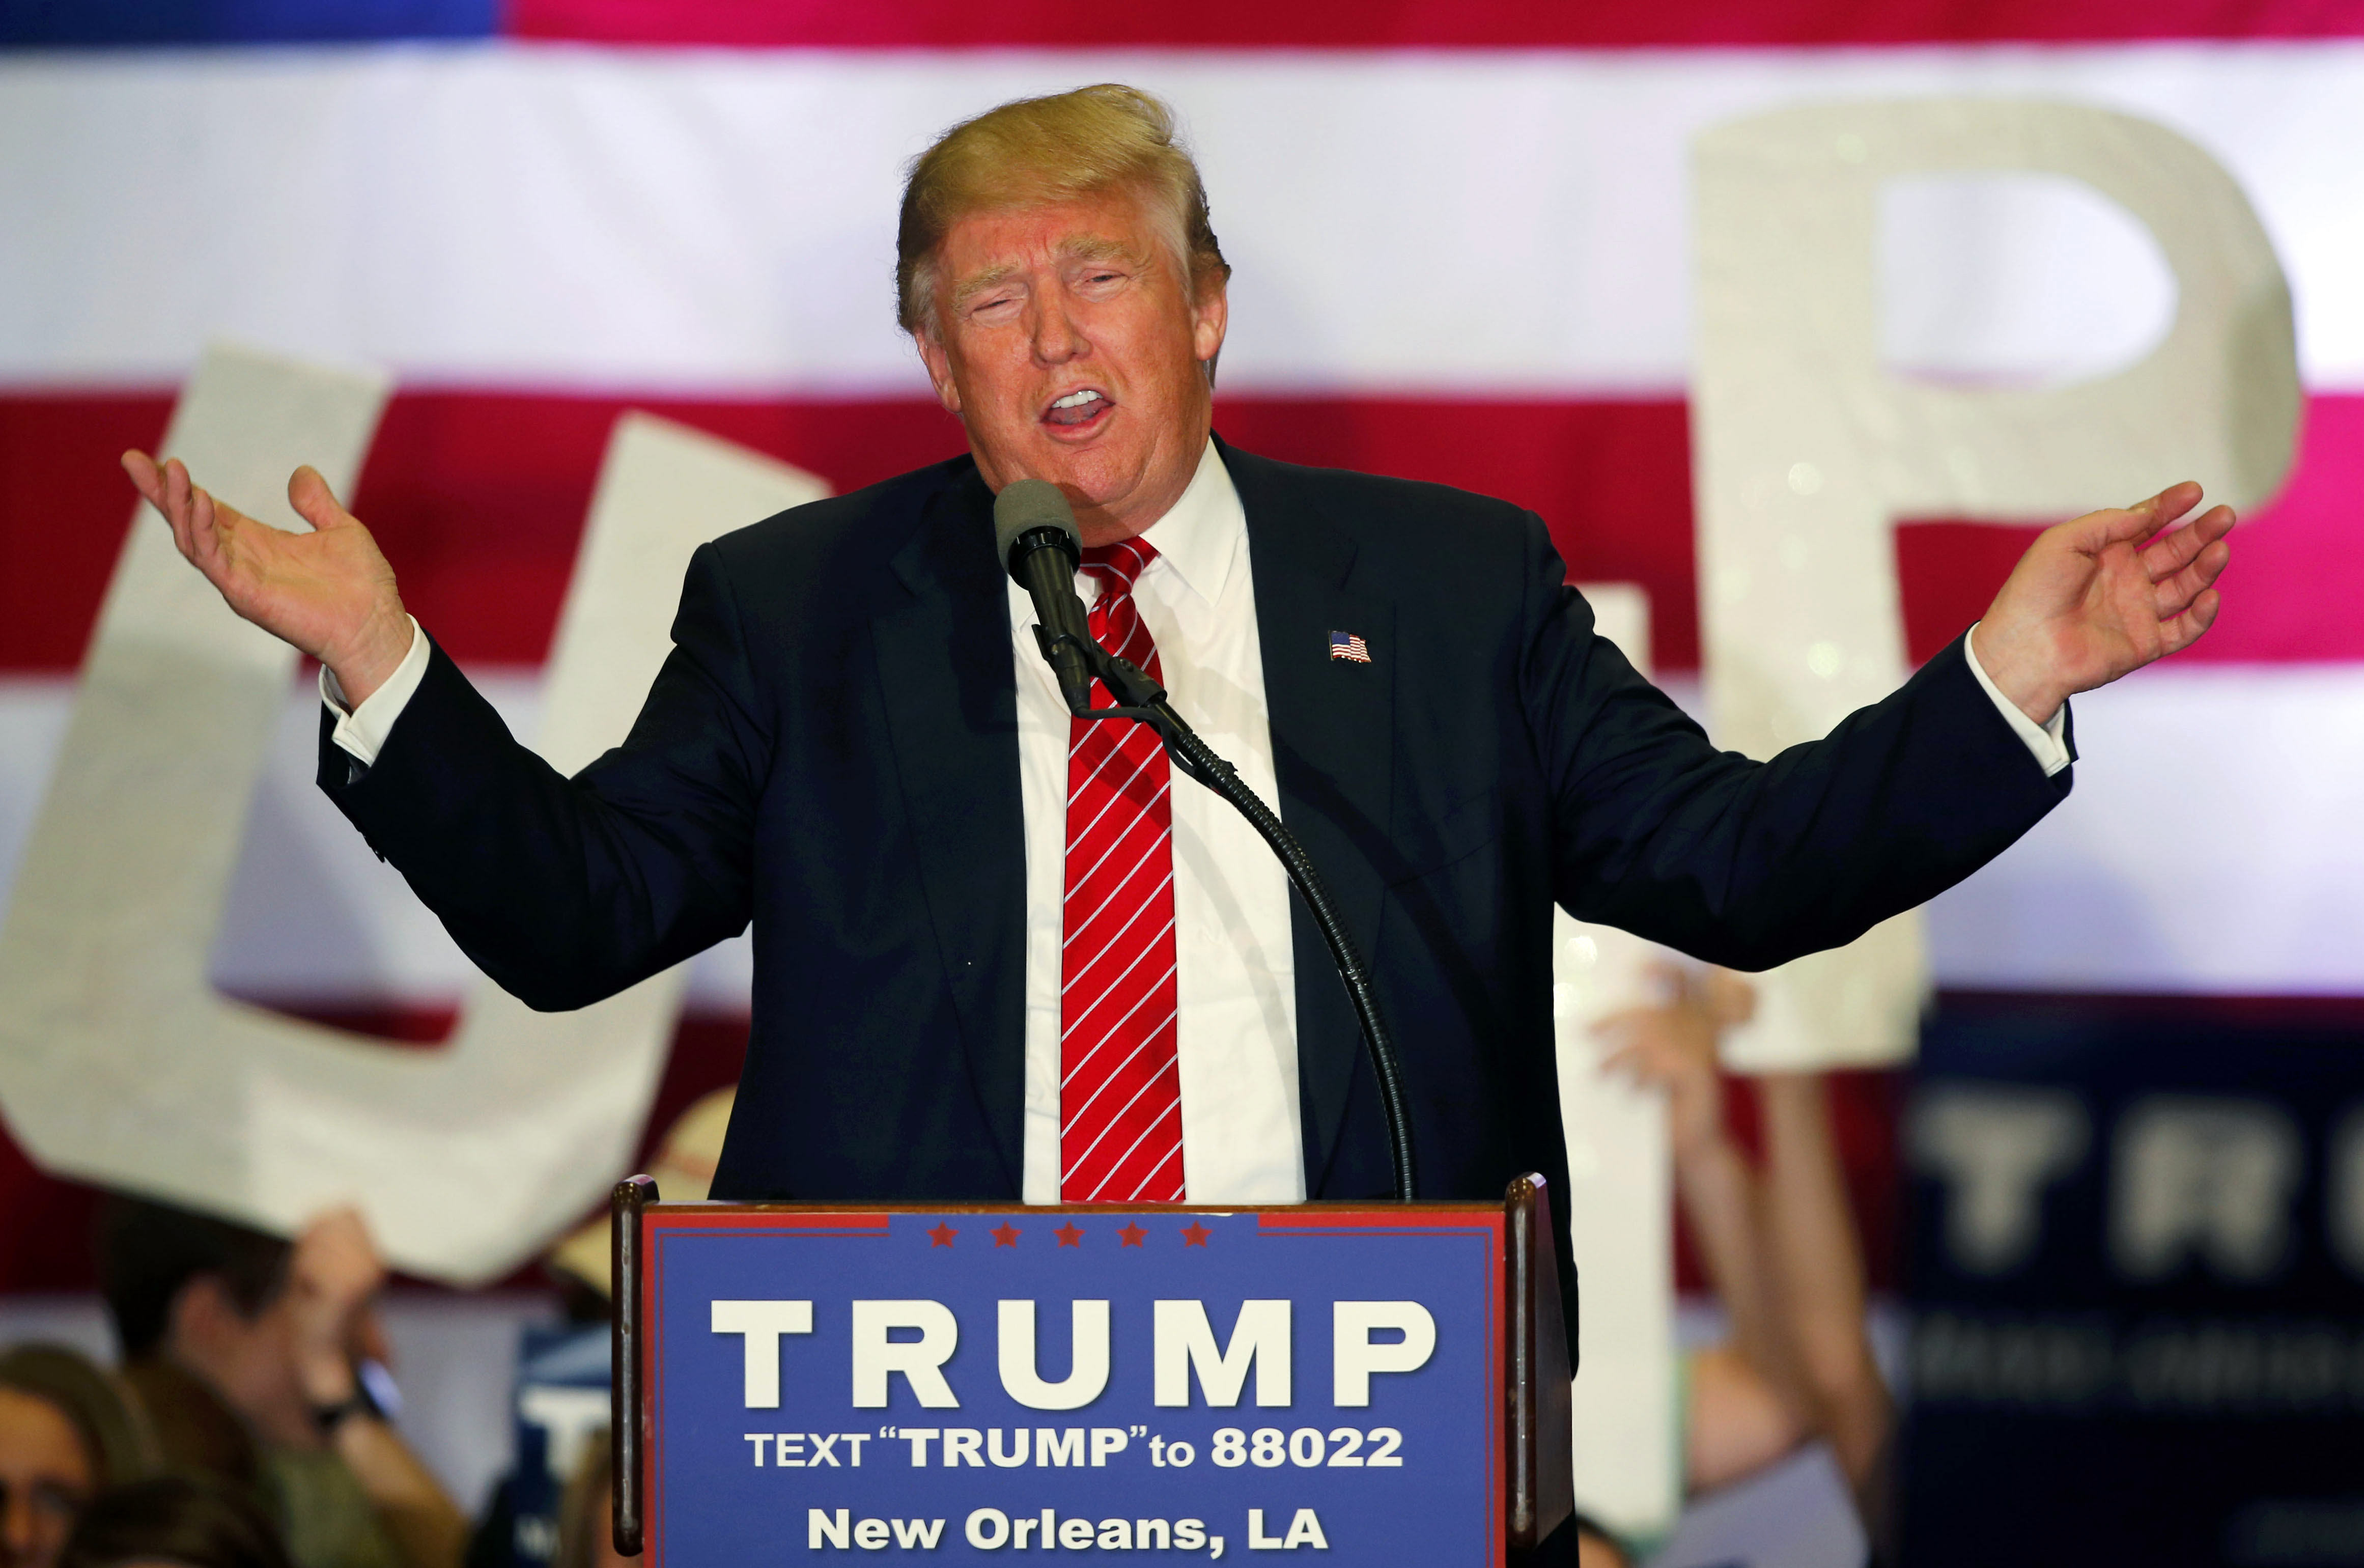 Republican presidential candidate Donald Trump speaks at a campaign rally in New Orleans, Friday, March 4, 2016. (AP Photo/Gerald Herbert)